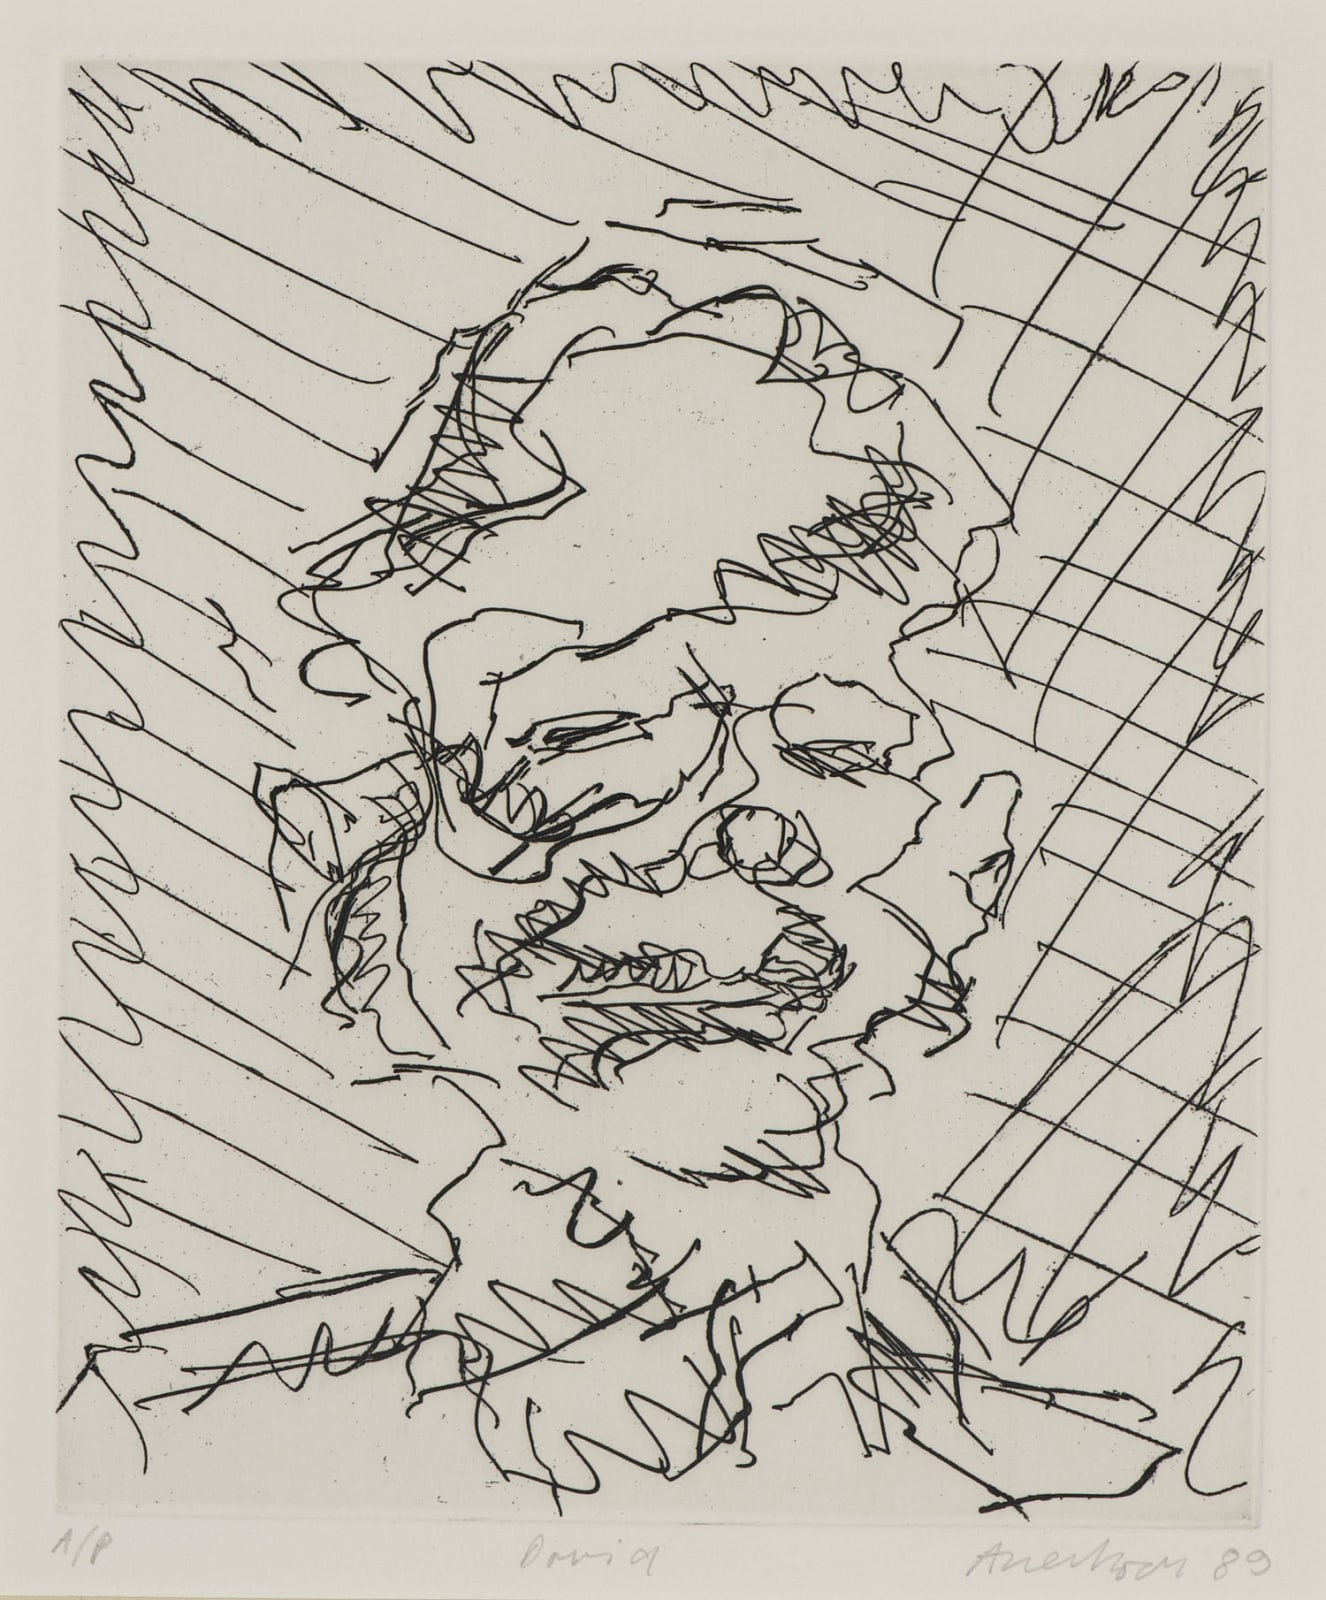 Frank Auerbach (1931-) David, Series: Part of Seven Portraits 1989 Etching, printed on Somerset white paper, artist's proof outside the published edition of 50 19.3 x 16.3 cm Ben Uri Collection © Frank Auerbach, courtesy Marlborough Fine Art To see and discover more about this artist click here